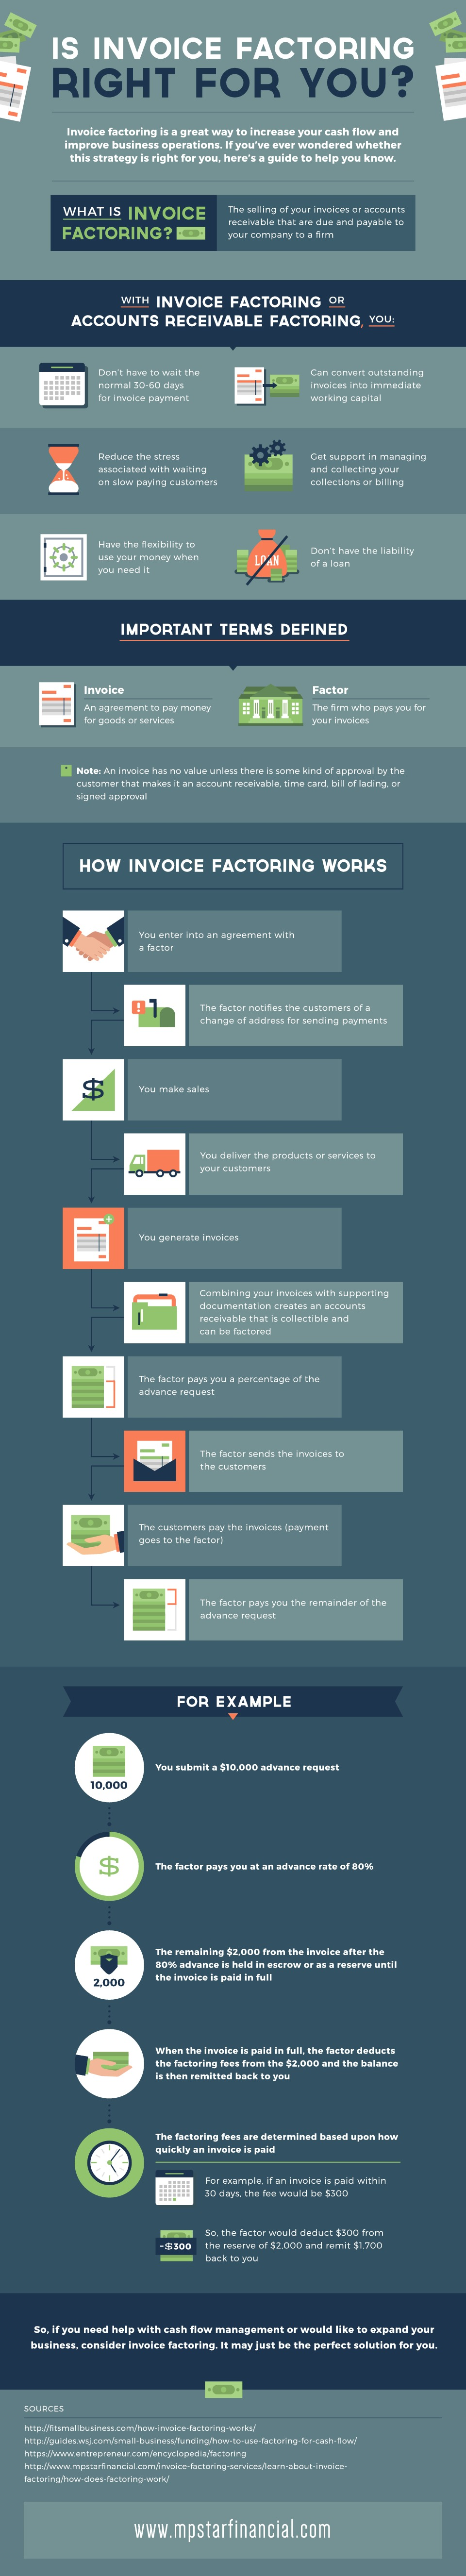 Guest Post The Ultimate Guide To Invoice Factoring Venture - Invoice financing startup